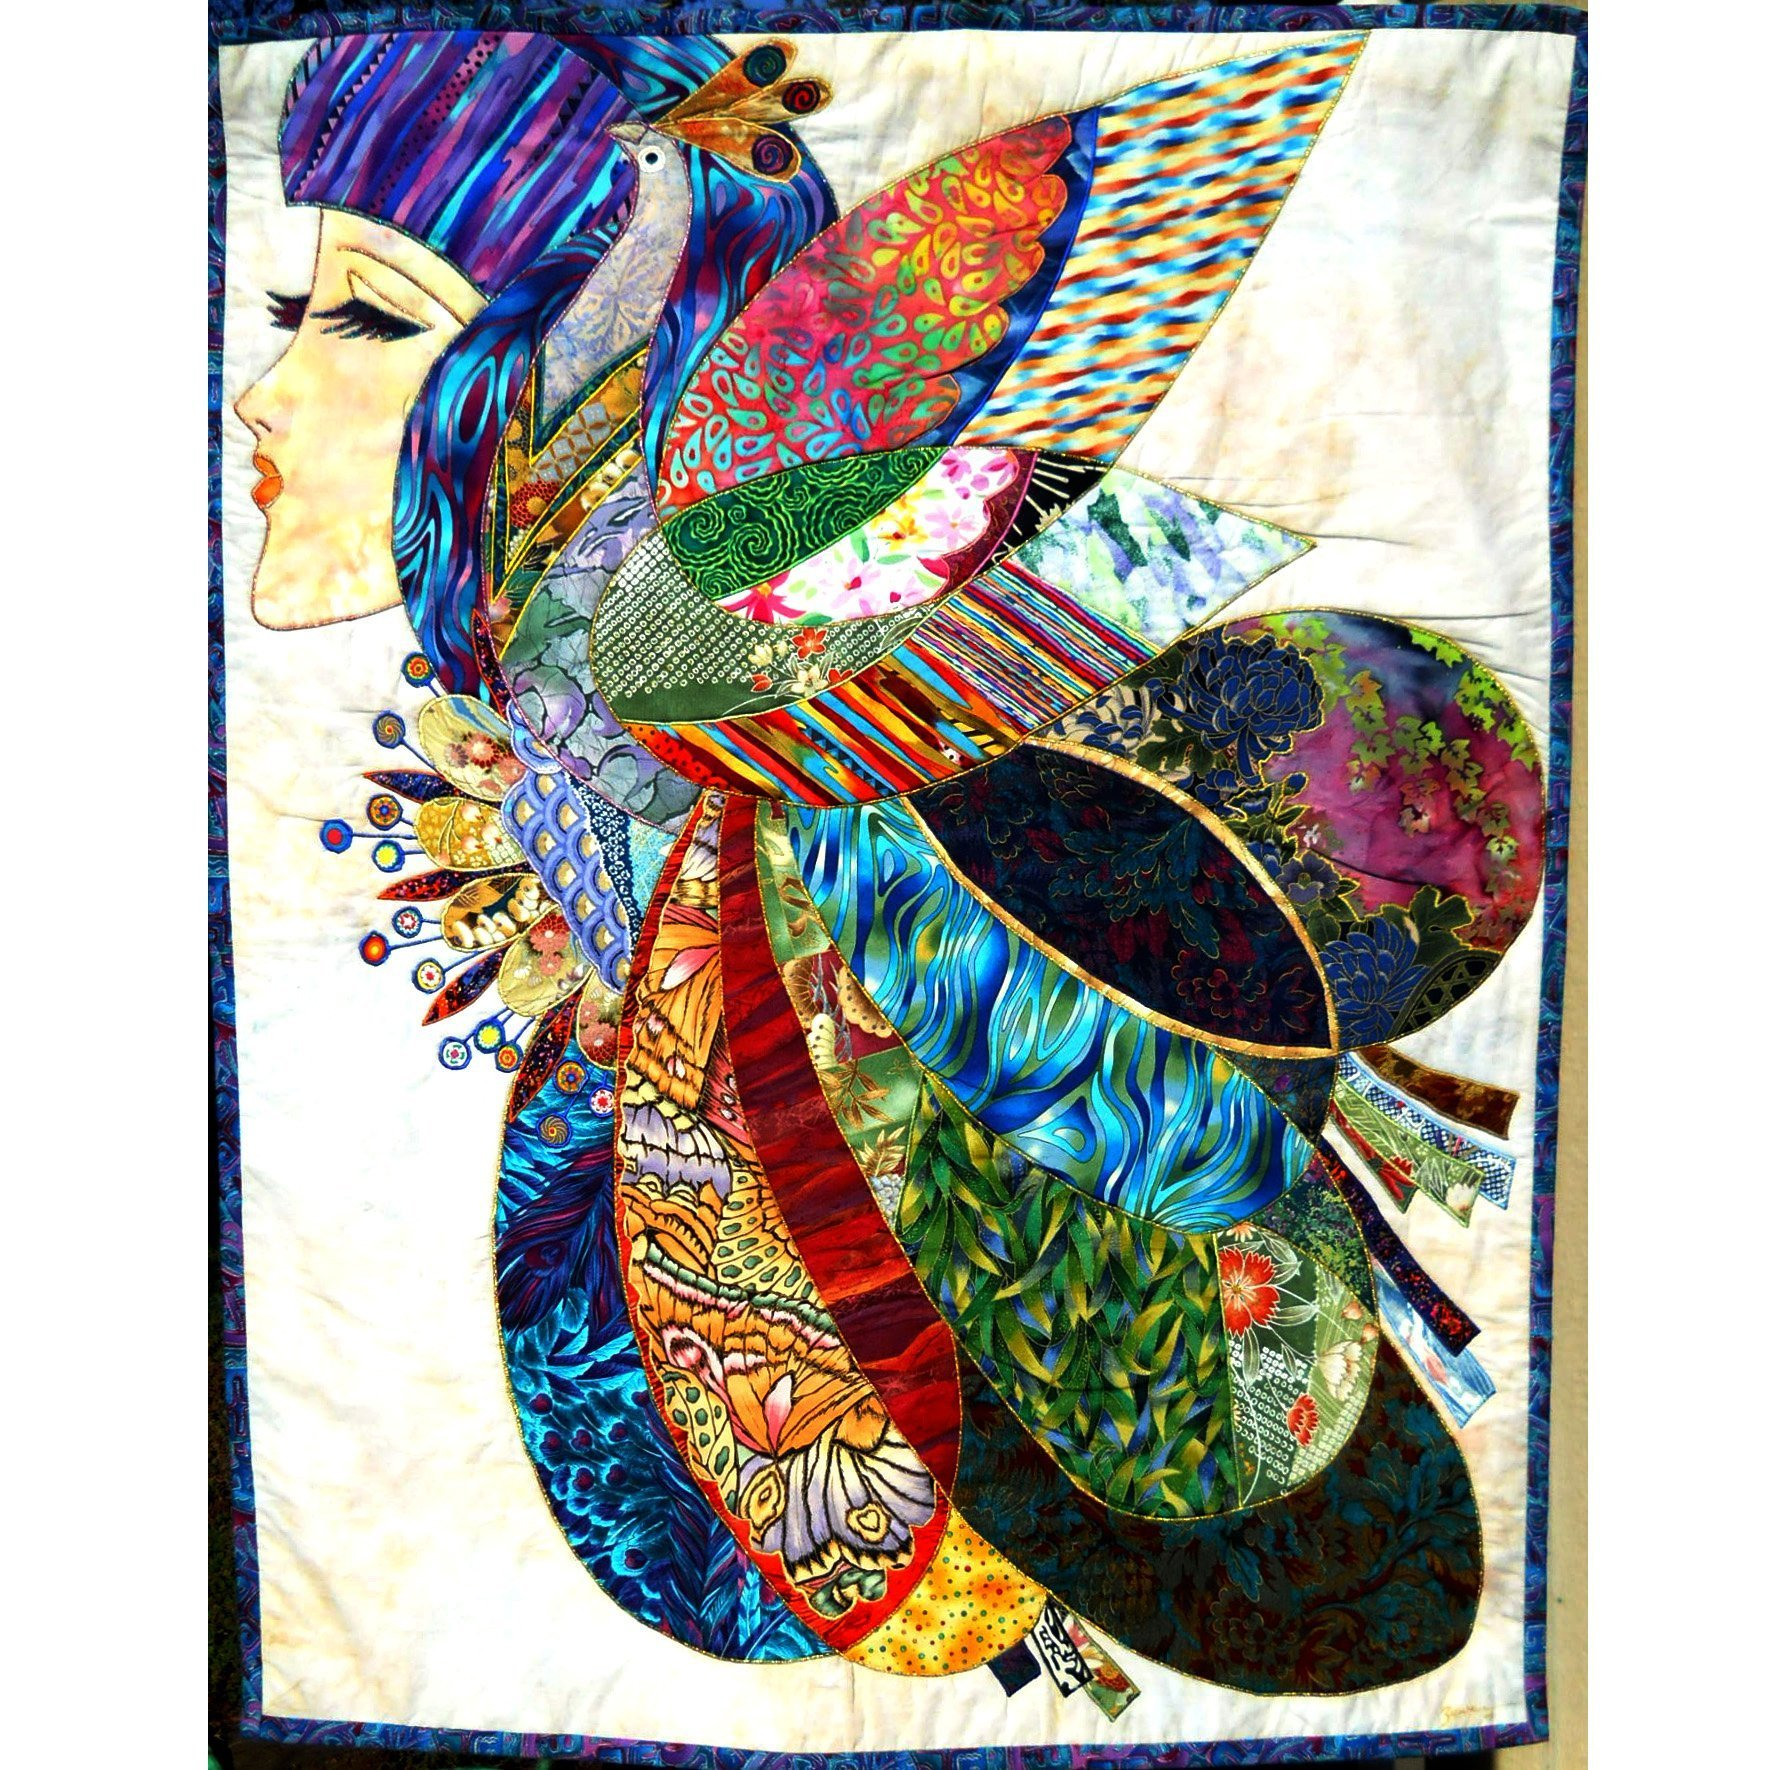 OOAK Textile Wall-hanging Art Quilt Tapestry, Enchantment, Peacock & Girl Face, New Home Decor Gift